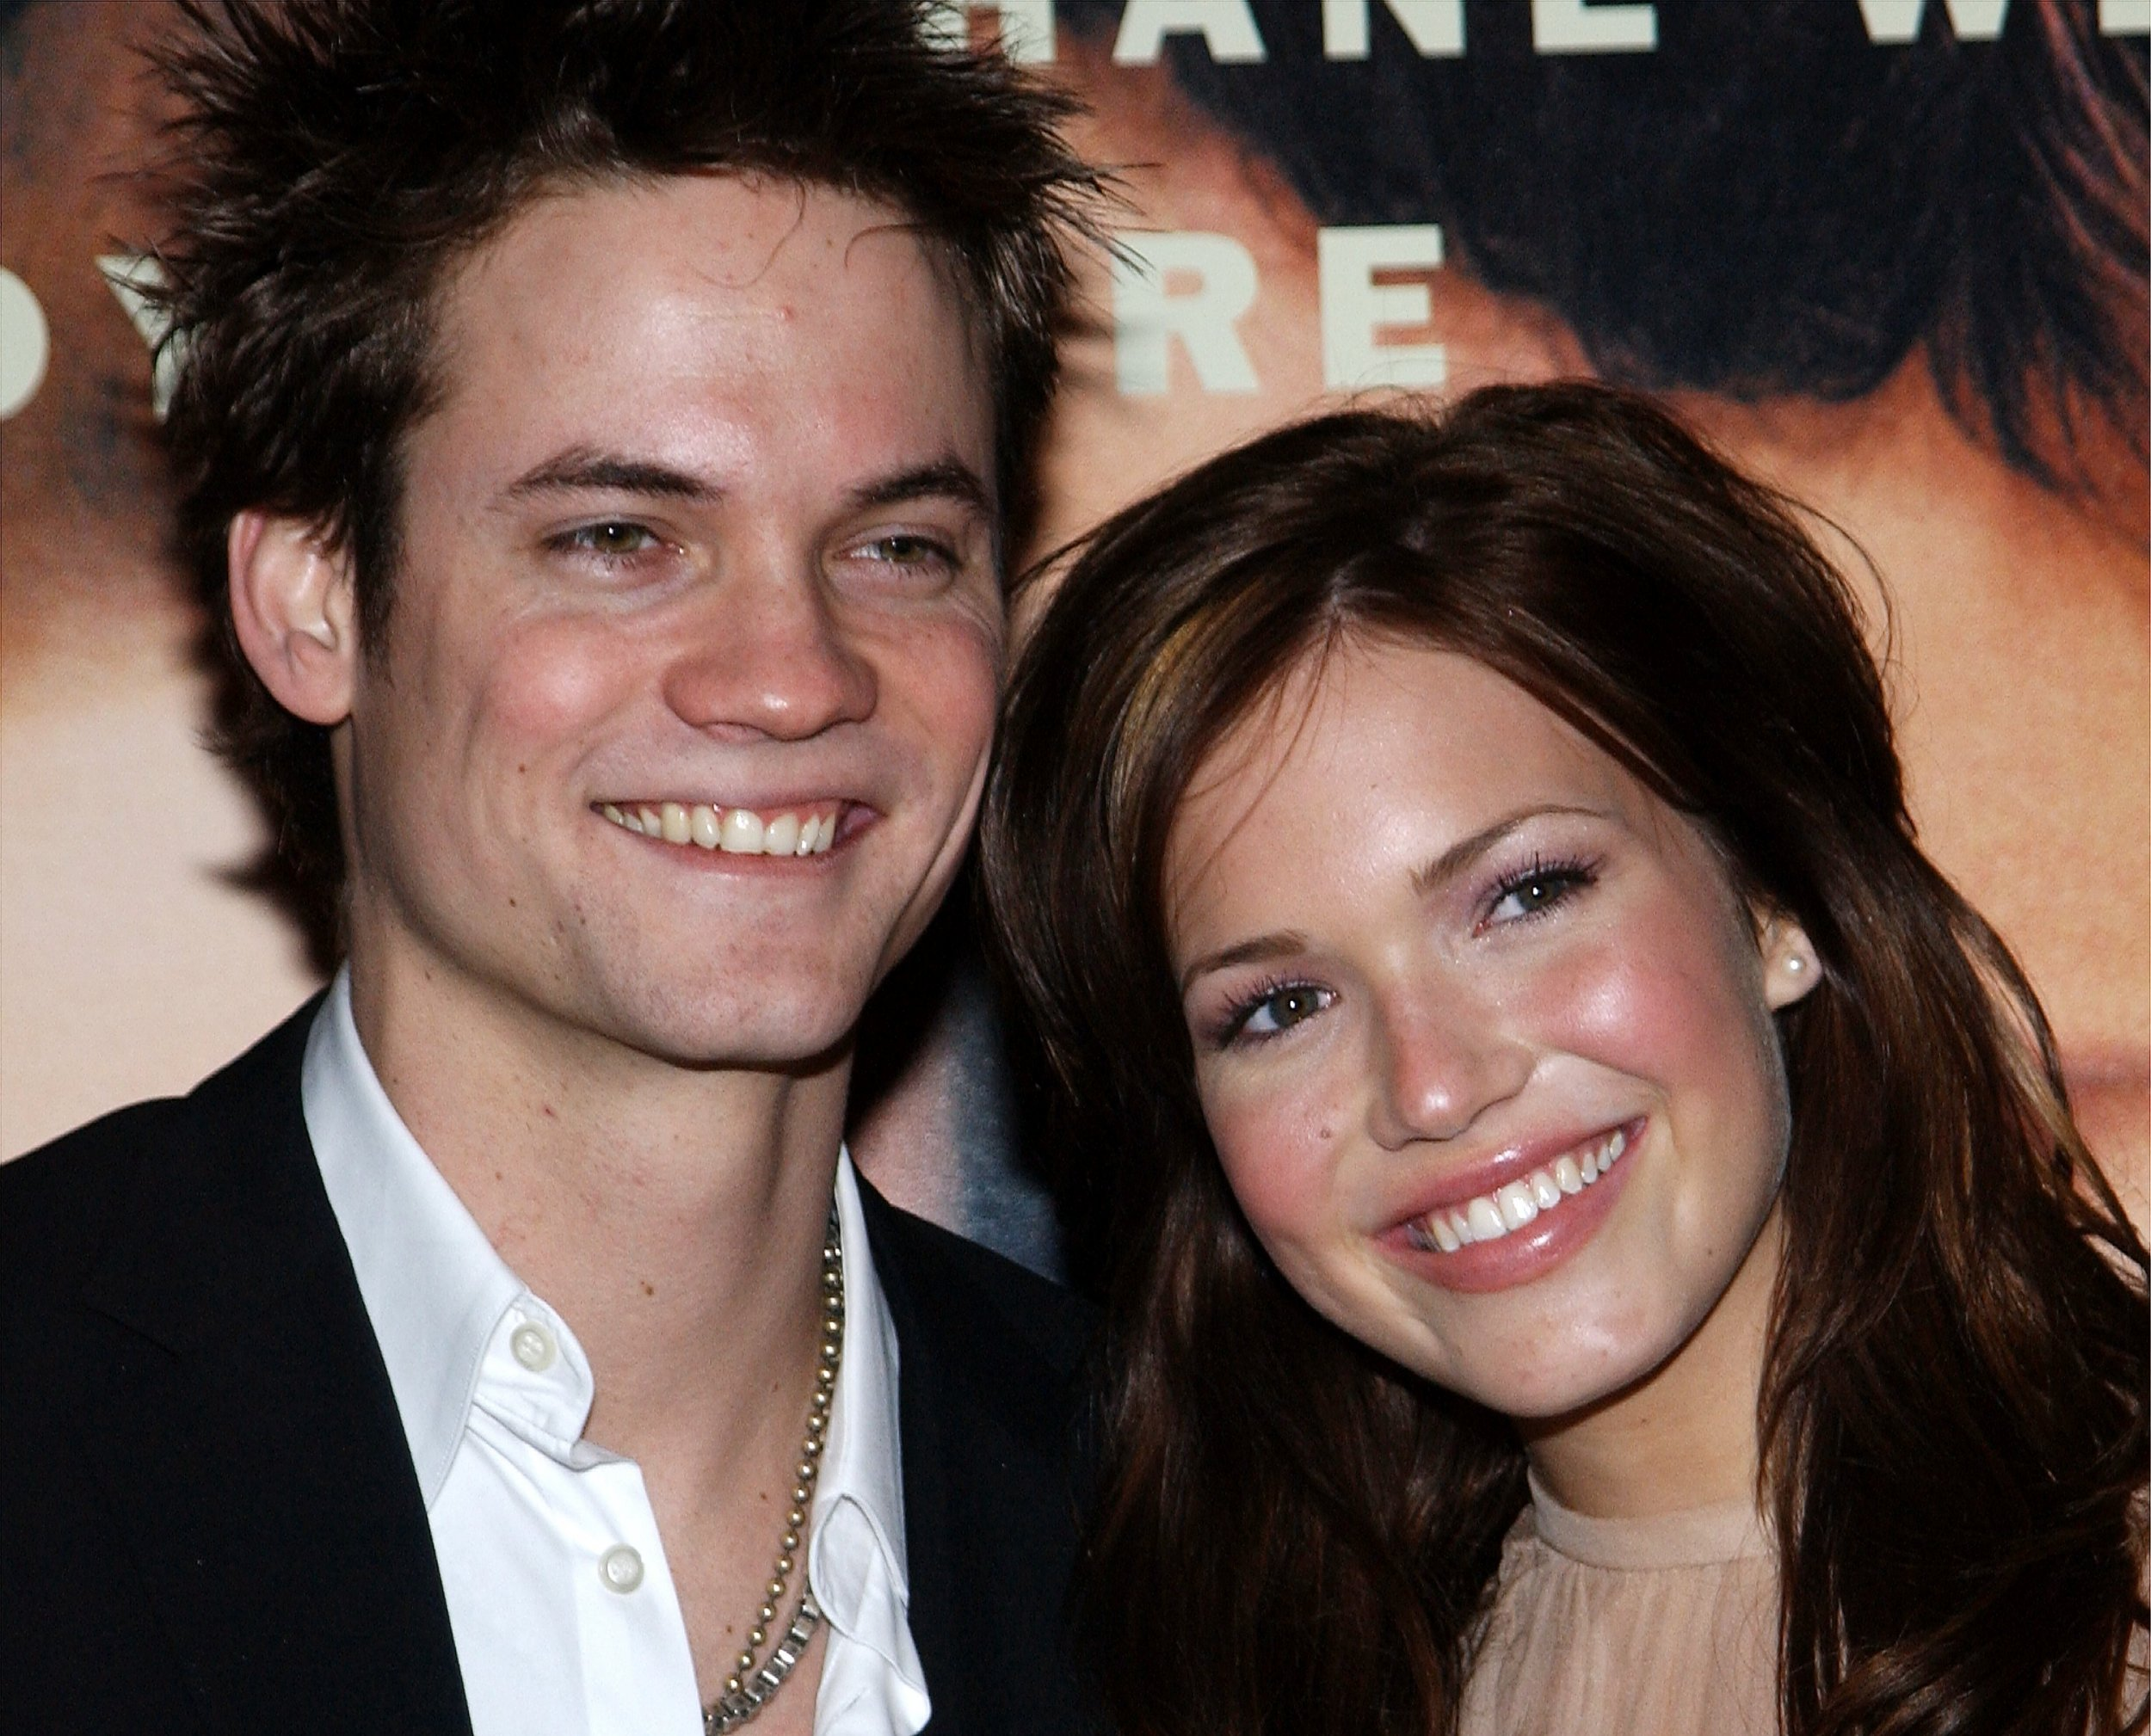 Mandy Moore Called Strongest Woman By Shane West Amid Allegations Against Ex Husband Ryan Adams